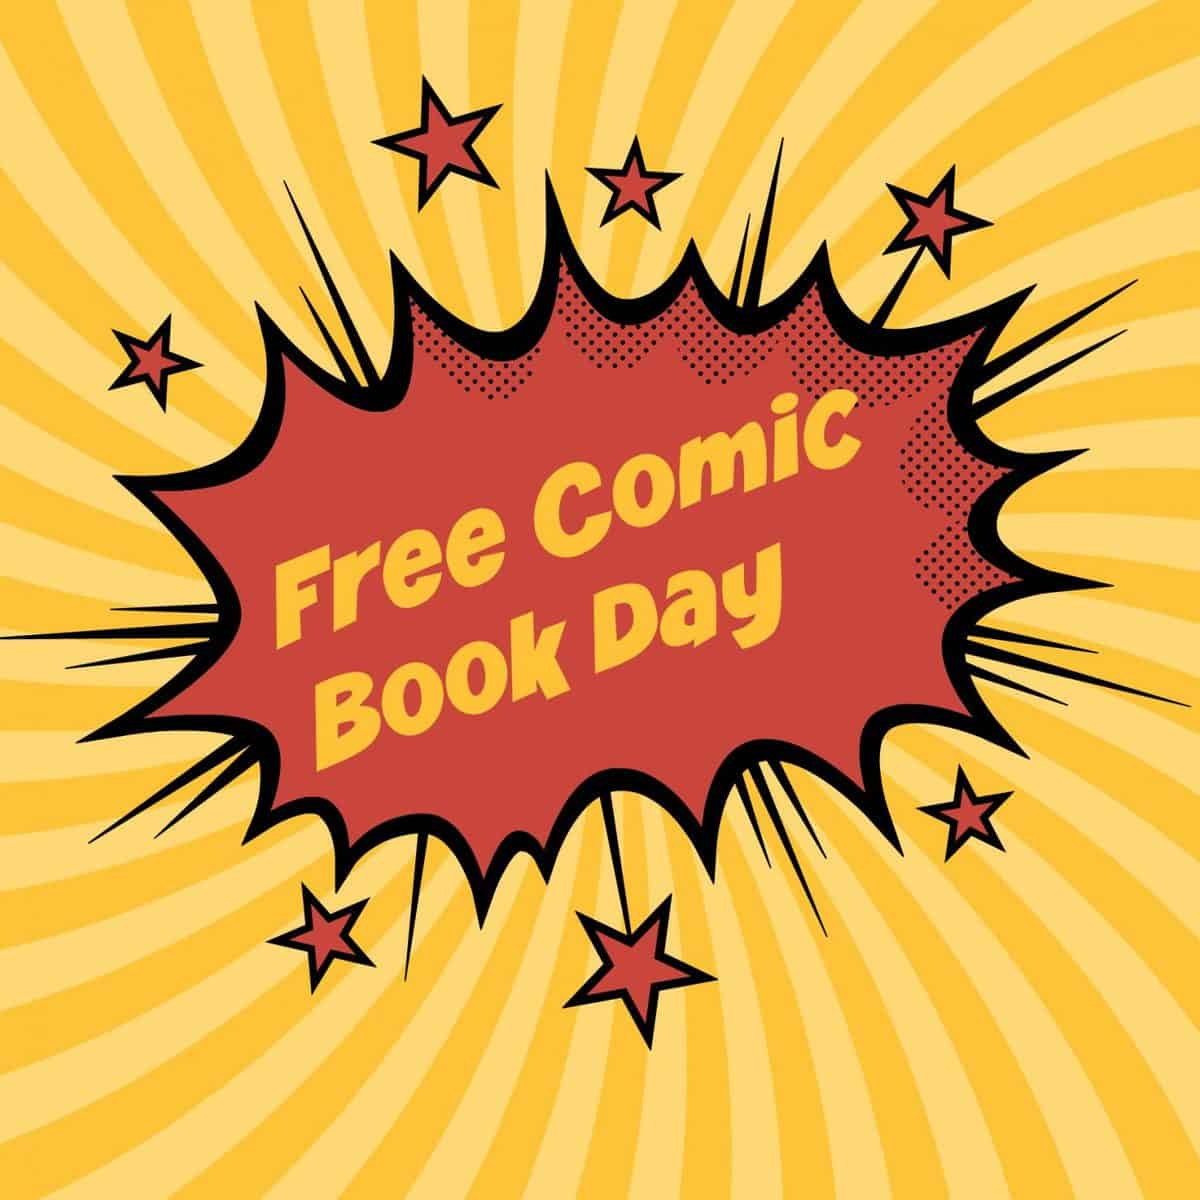 Free Comic Book Day Locations: Ann Arbor Free Comic Book Day 2017